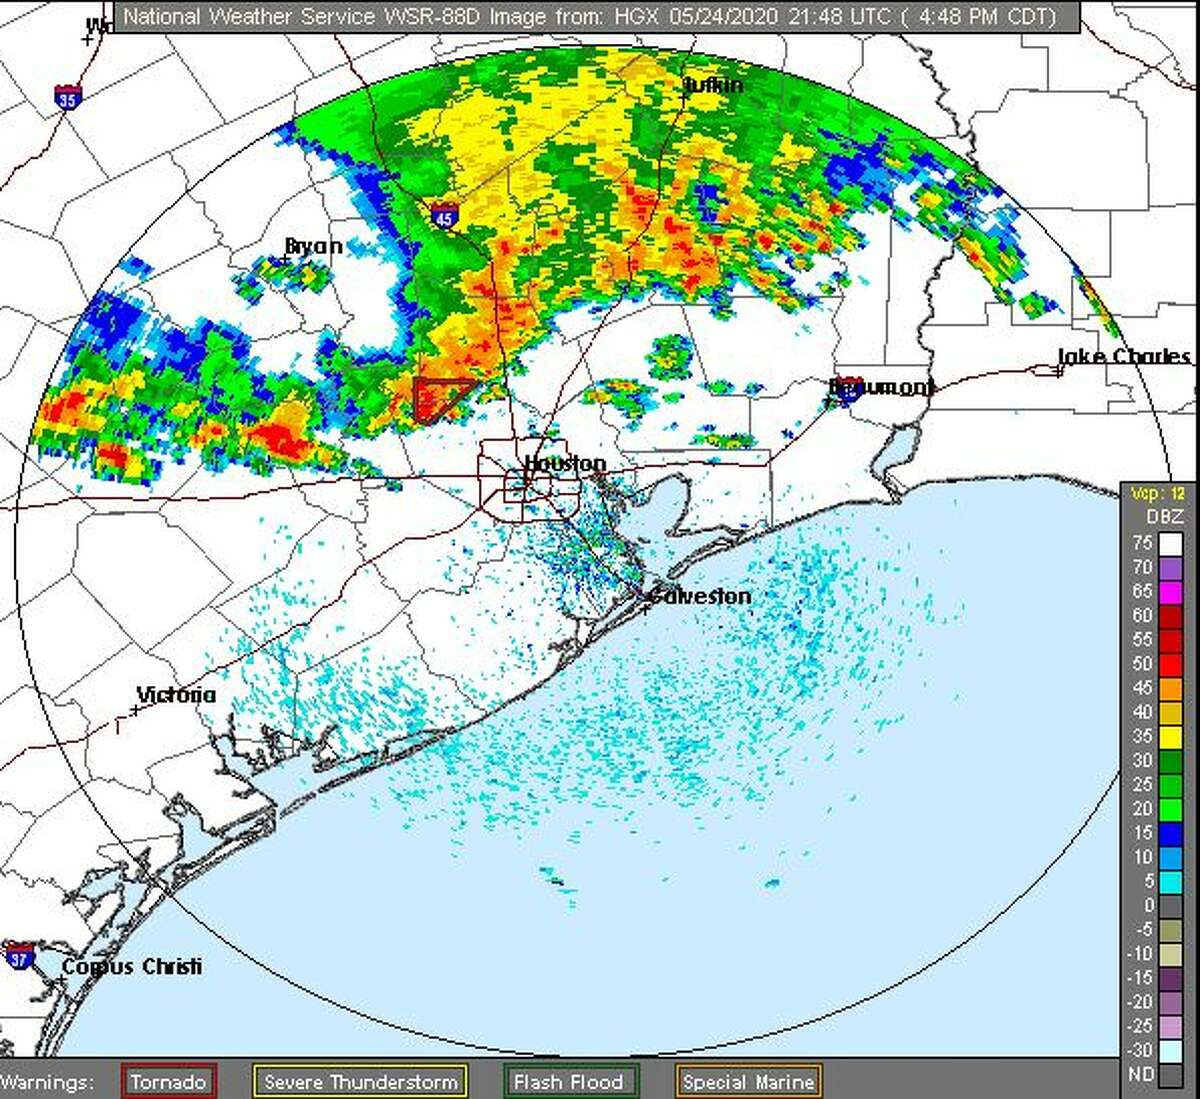 The National Weather Service has issued a tornado warning in effect for northwestern Harris, eastern Waller, and southwestern Montgomery counties until 5 p.m.